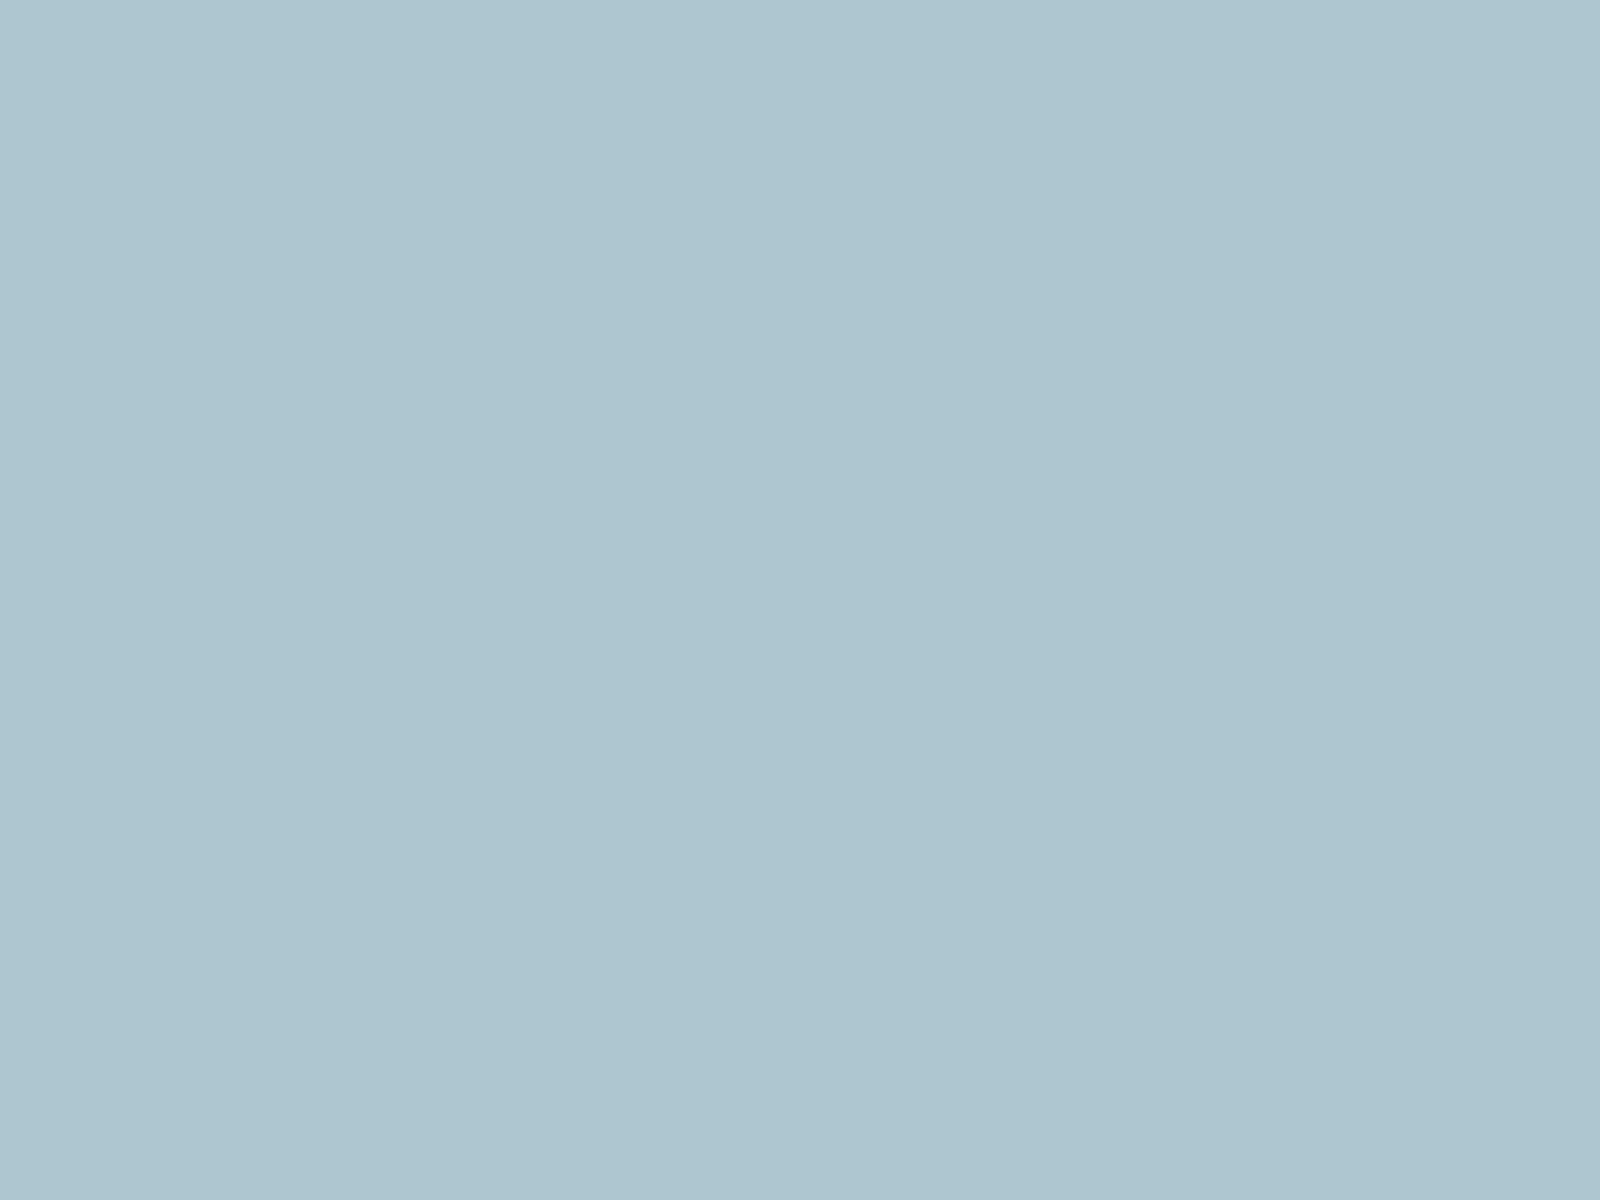 1600x1200 Pastel Blue Solid Color Background